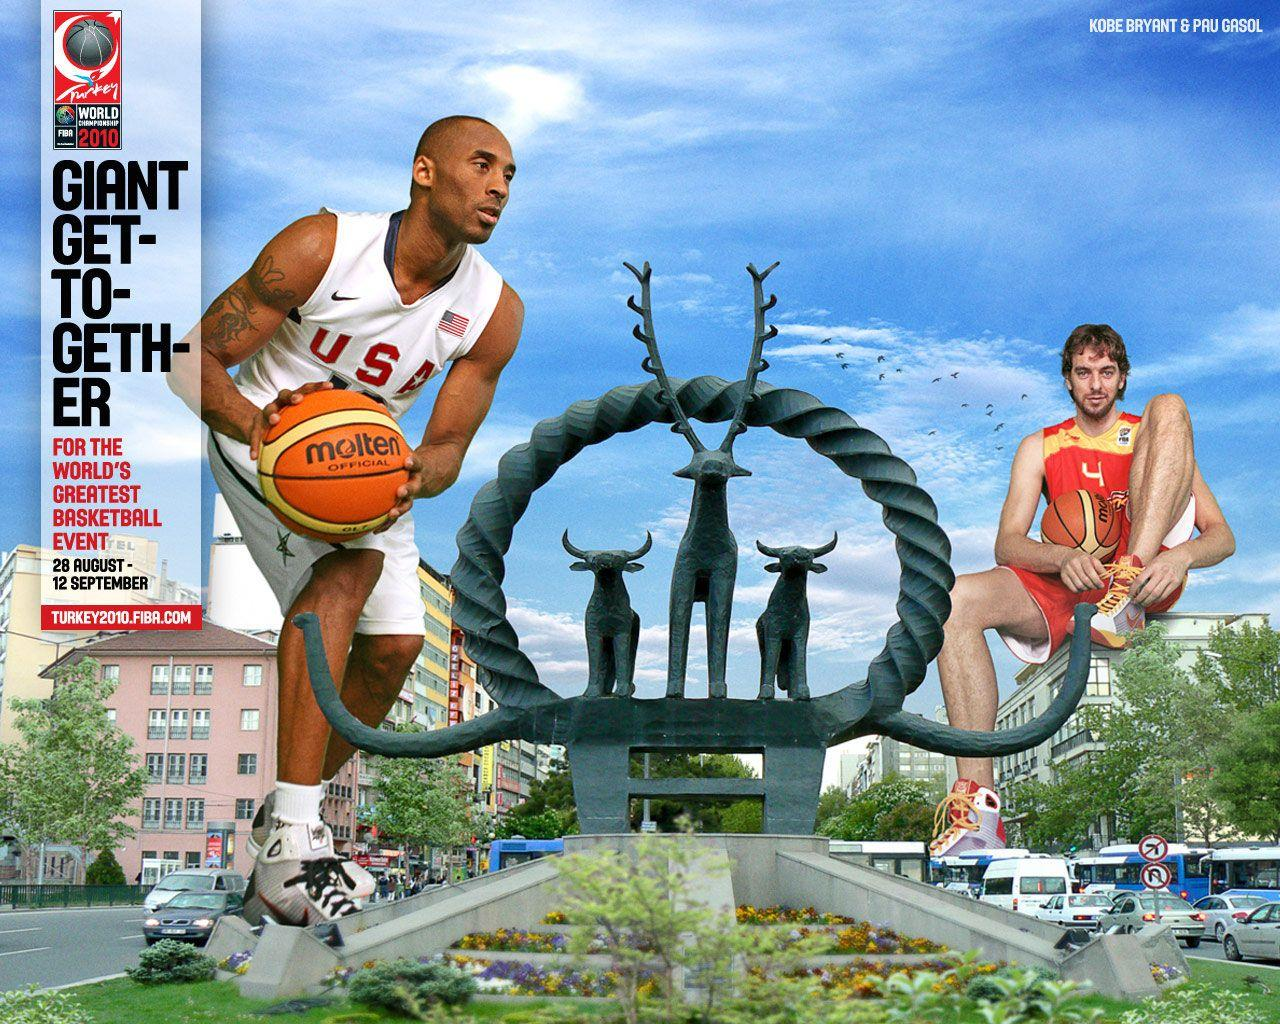 kobe bryant and pau gasol fiba world championship 2010 wallpapers photo